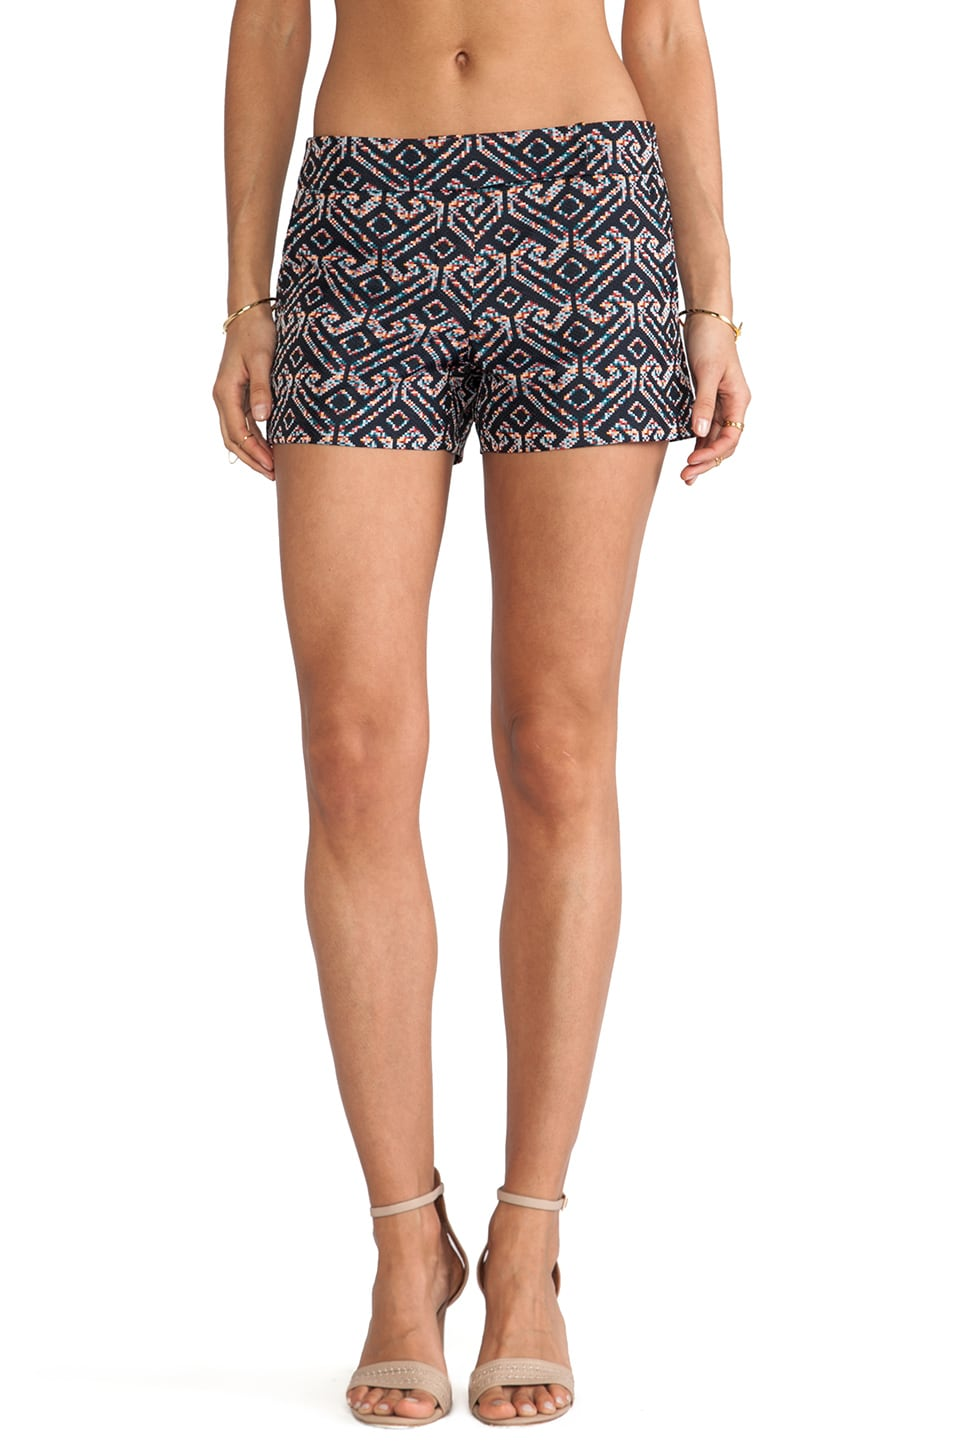 Trina Turk Corbin Shorts in Multi